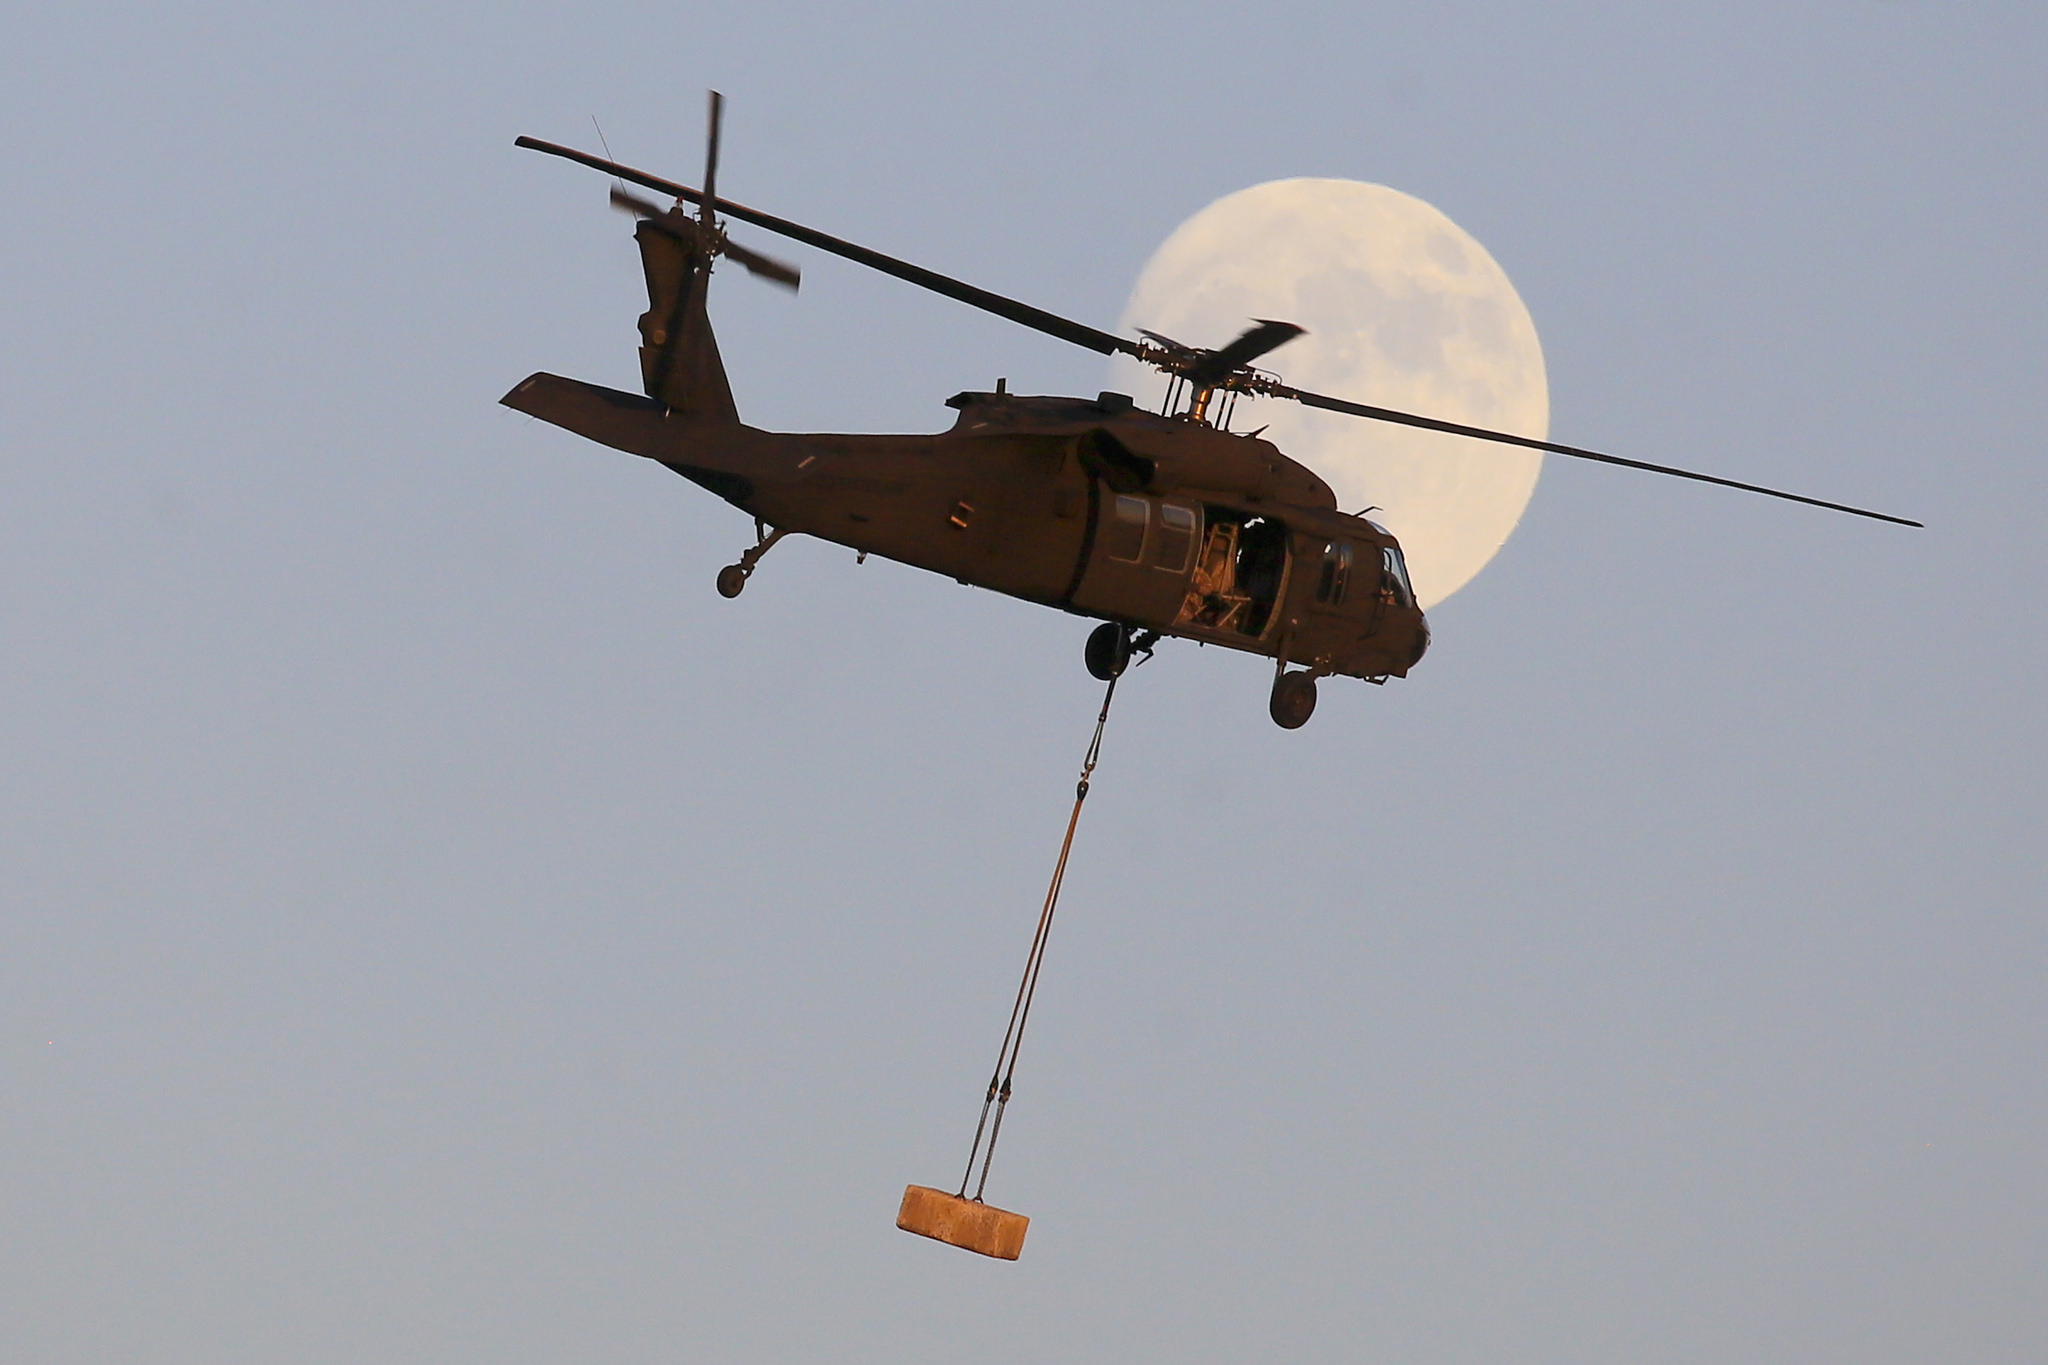 A New Jersey National Guard UH-60 Black Hawk from the 1-150 Assault Helicopter Battalion flies with a concrete block in front of the waxing gibbous moon during sling load training at Joint Base McGuire-Dix-Lakehurst, N.J., Dec. 1, 2017. (Master Sgt. Matt Hecht/Air National Guard)